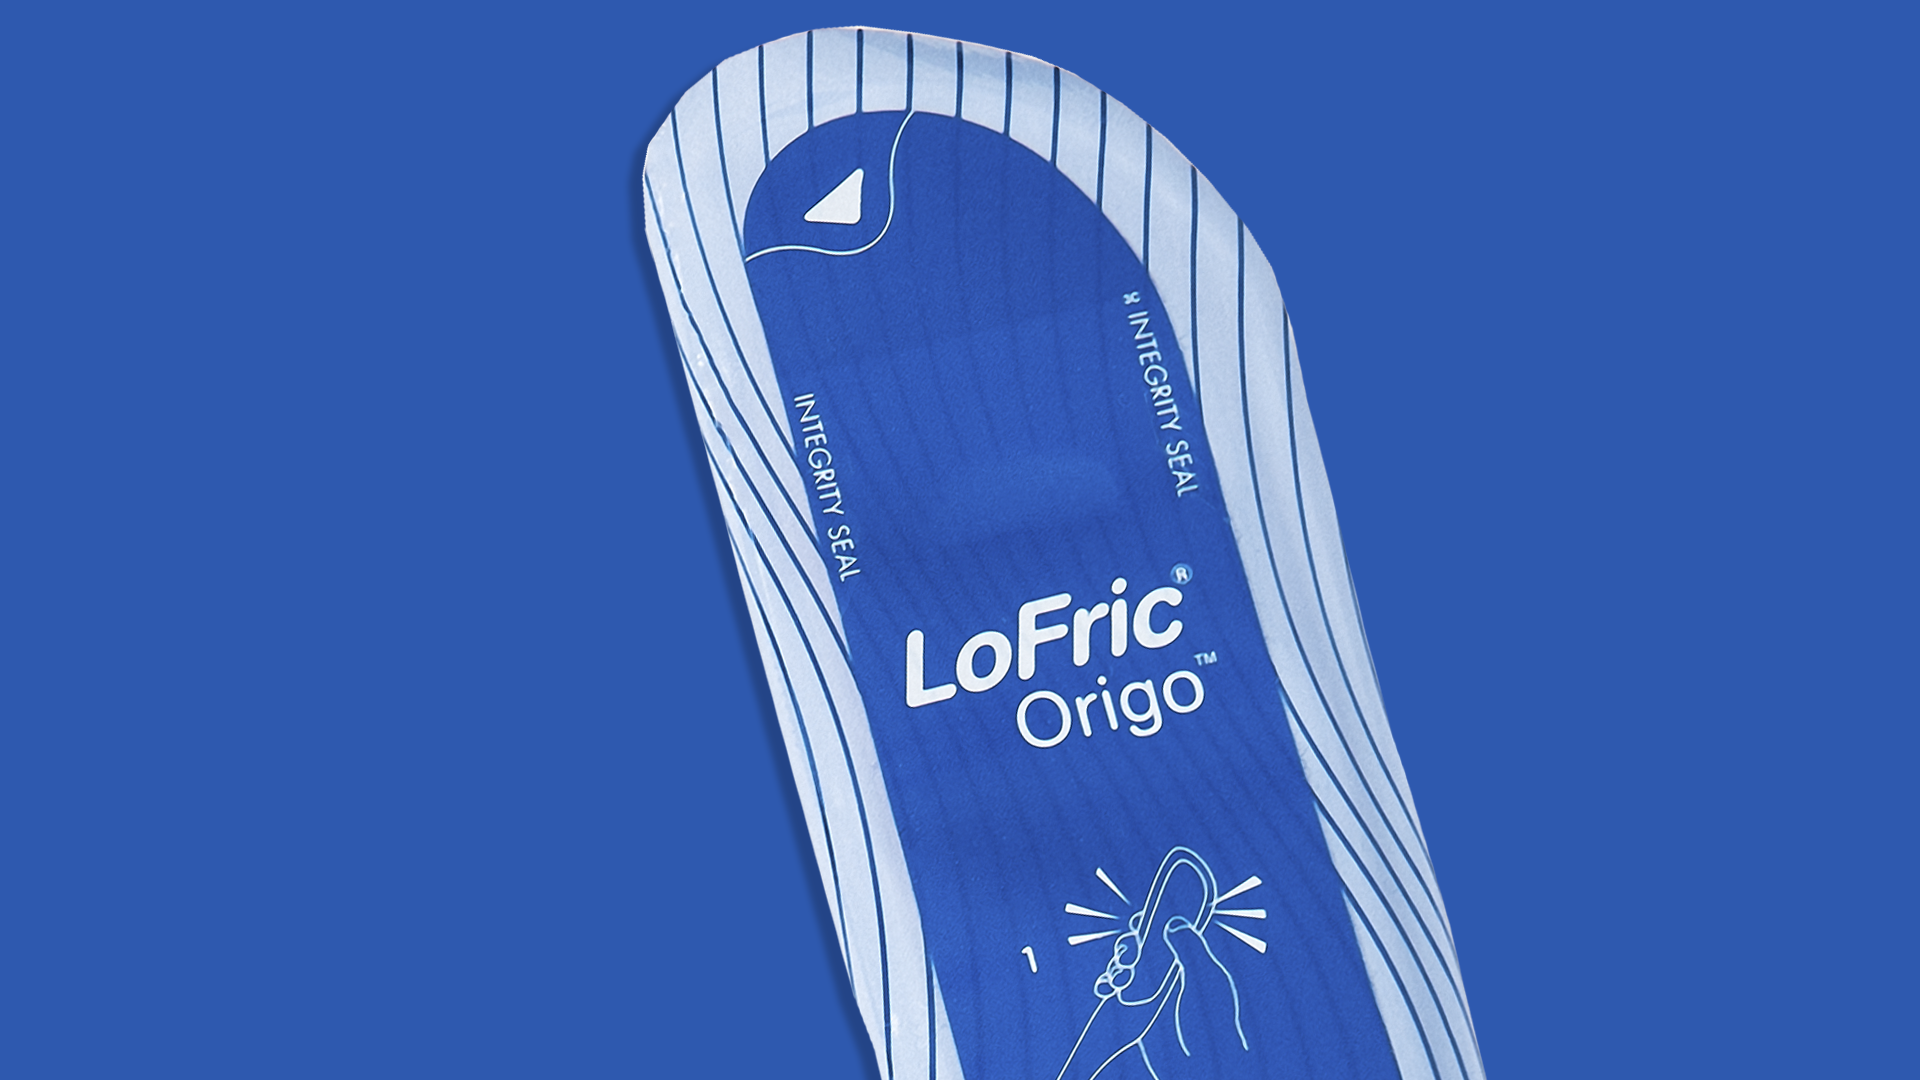 Wellspect Lofric Close up of Origo catheter